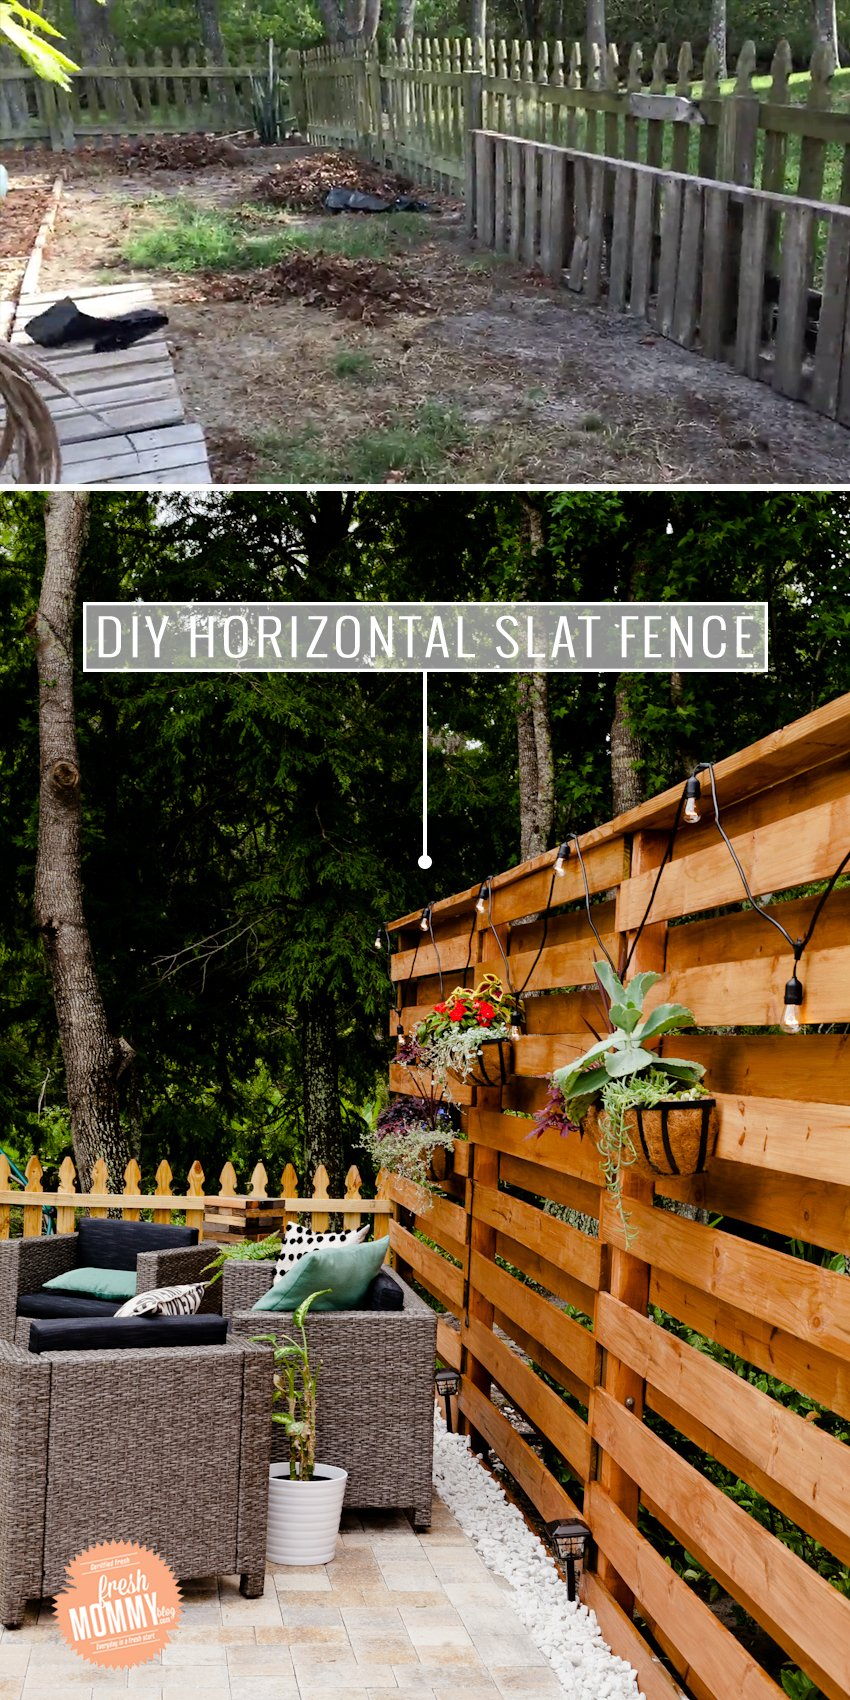 DIY Fence ideas: Horizontal Slat Fence